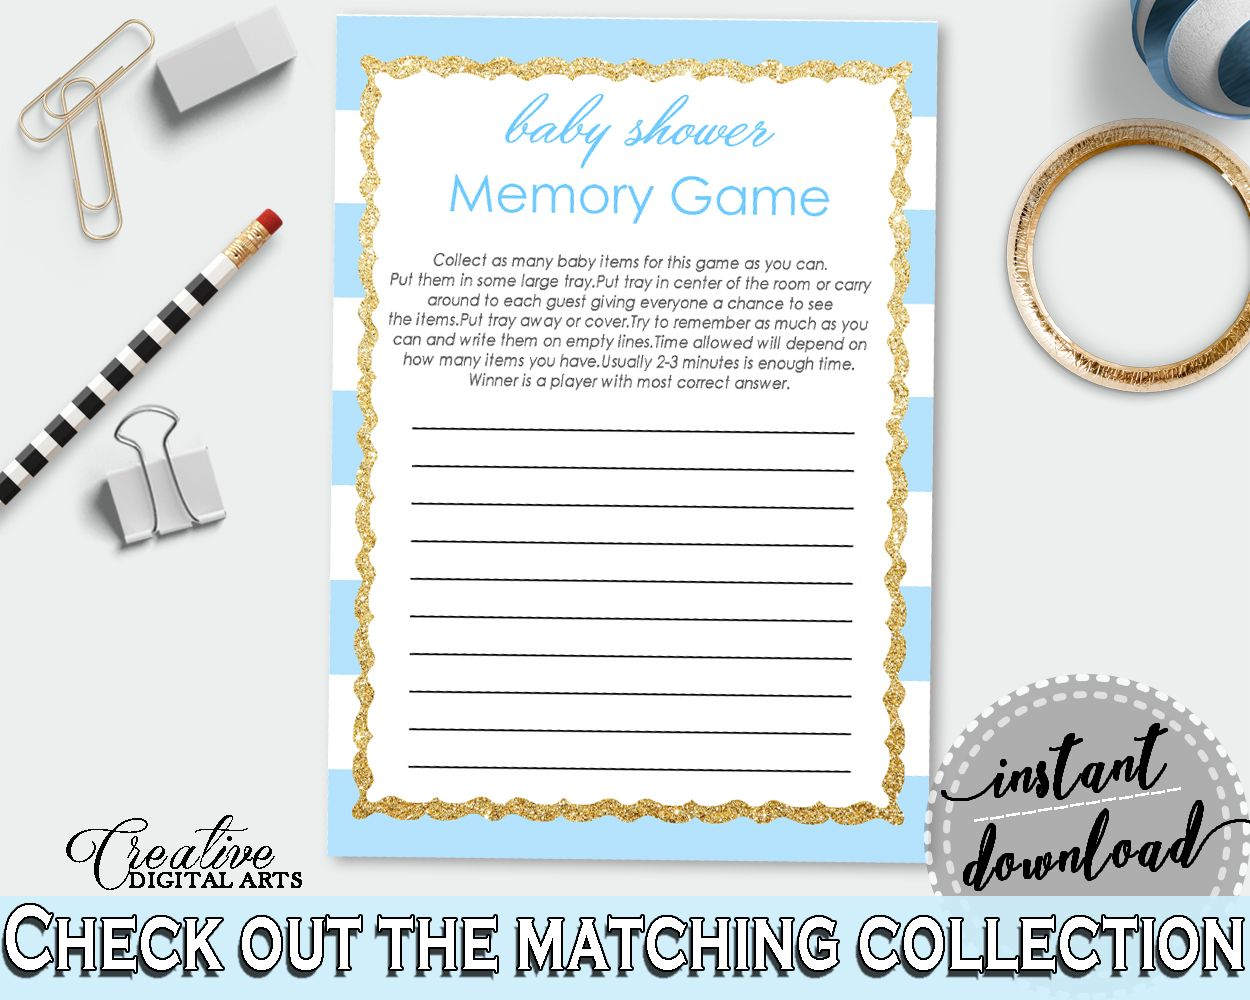 Shower Blue Theme Glam Baby Shower Win A Prize Remember MEMORY GAME, Party  Decorations, Instant Download, Shower Celebration   Bs002